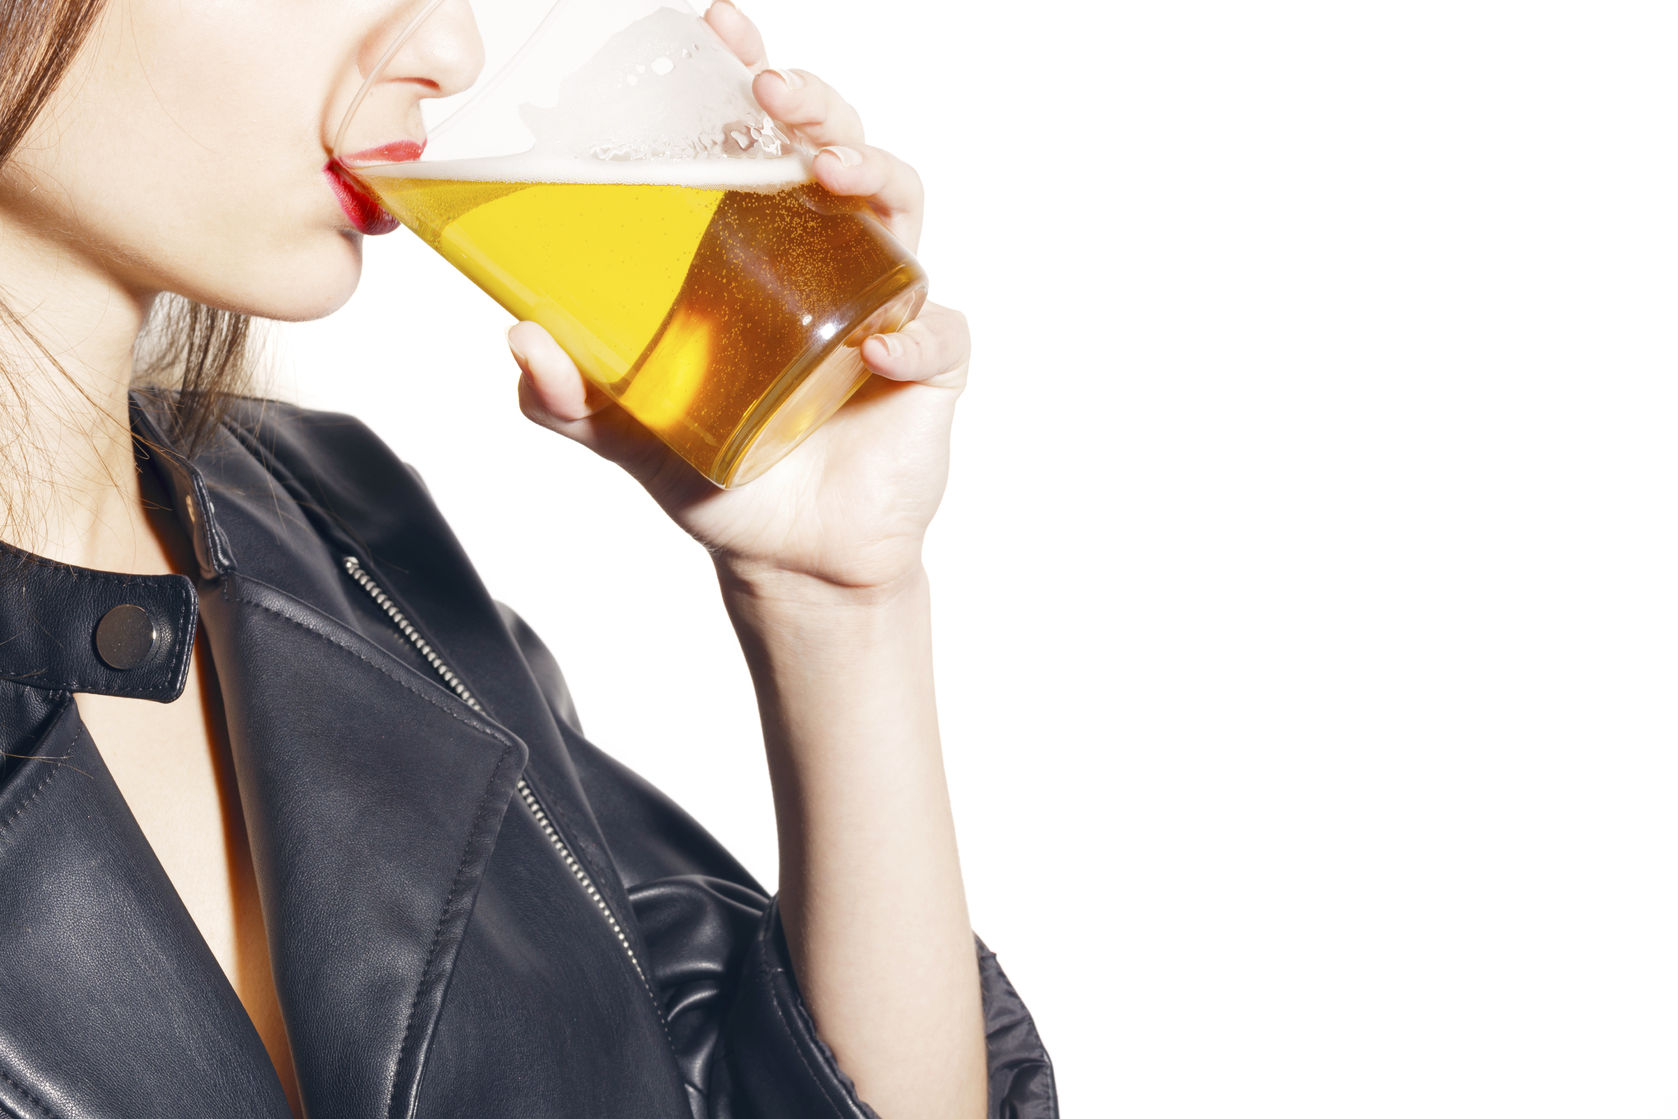 76508064 - girl with a glass of beer, on black lingerie and a leather jacket, over a white background. no face.